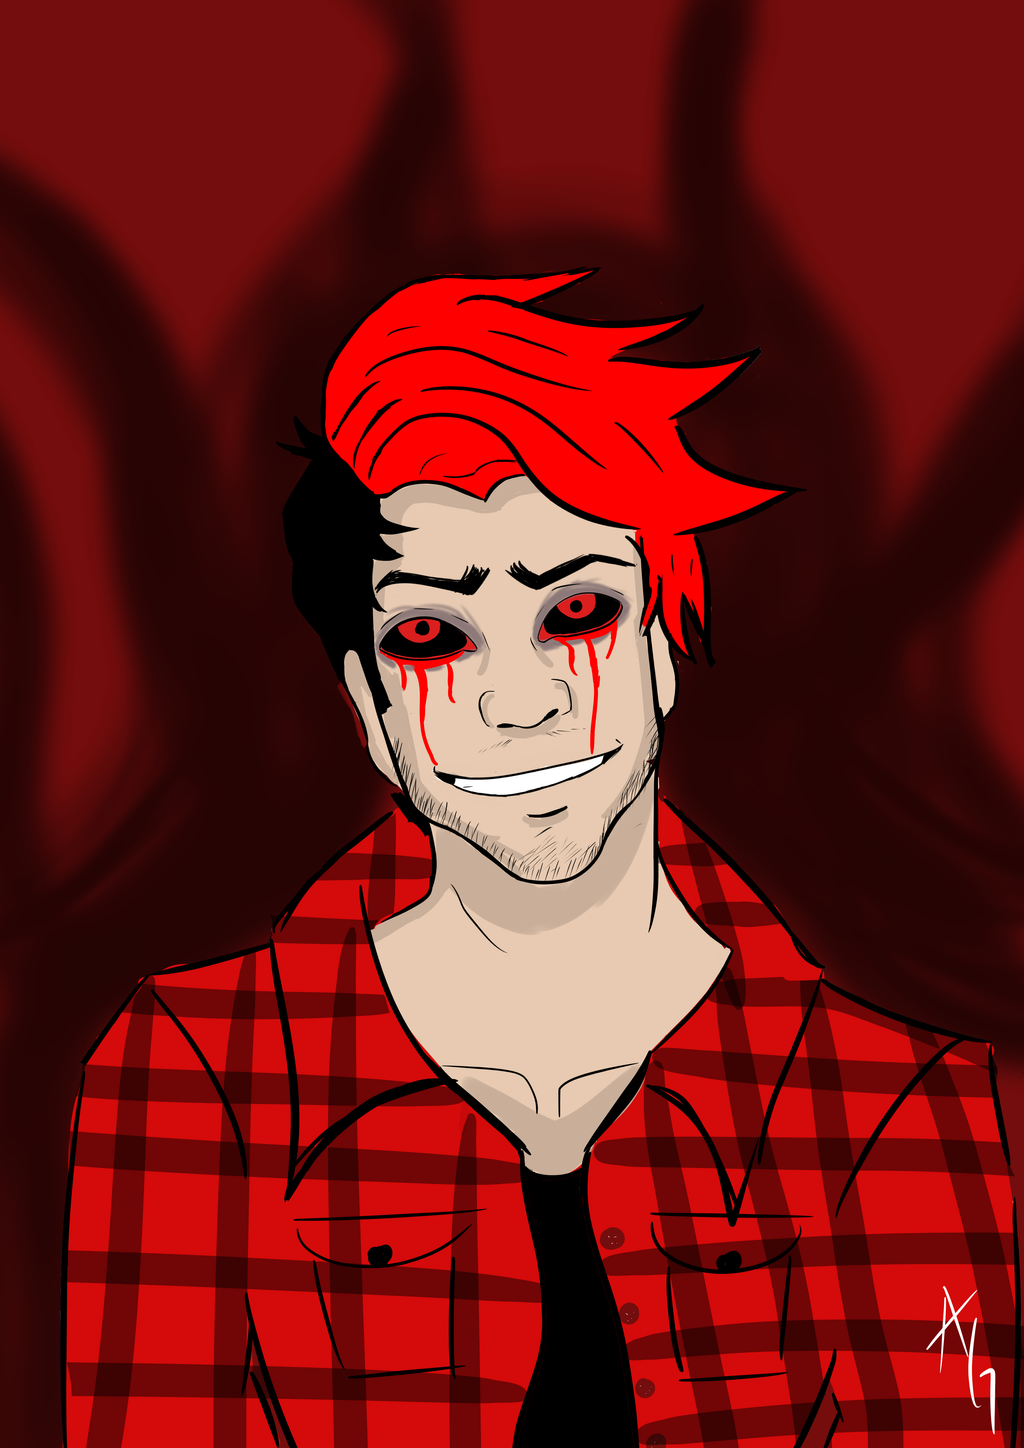 Darkiplier 602000202 on animated ham